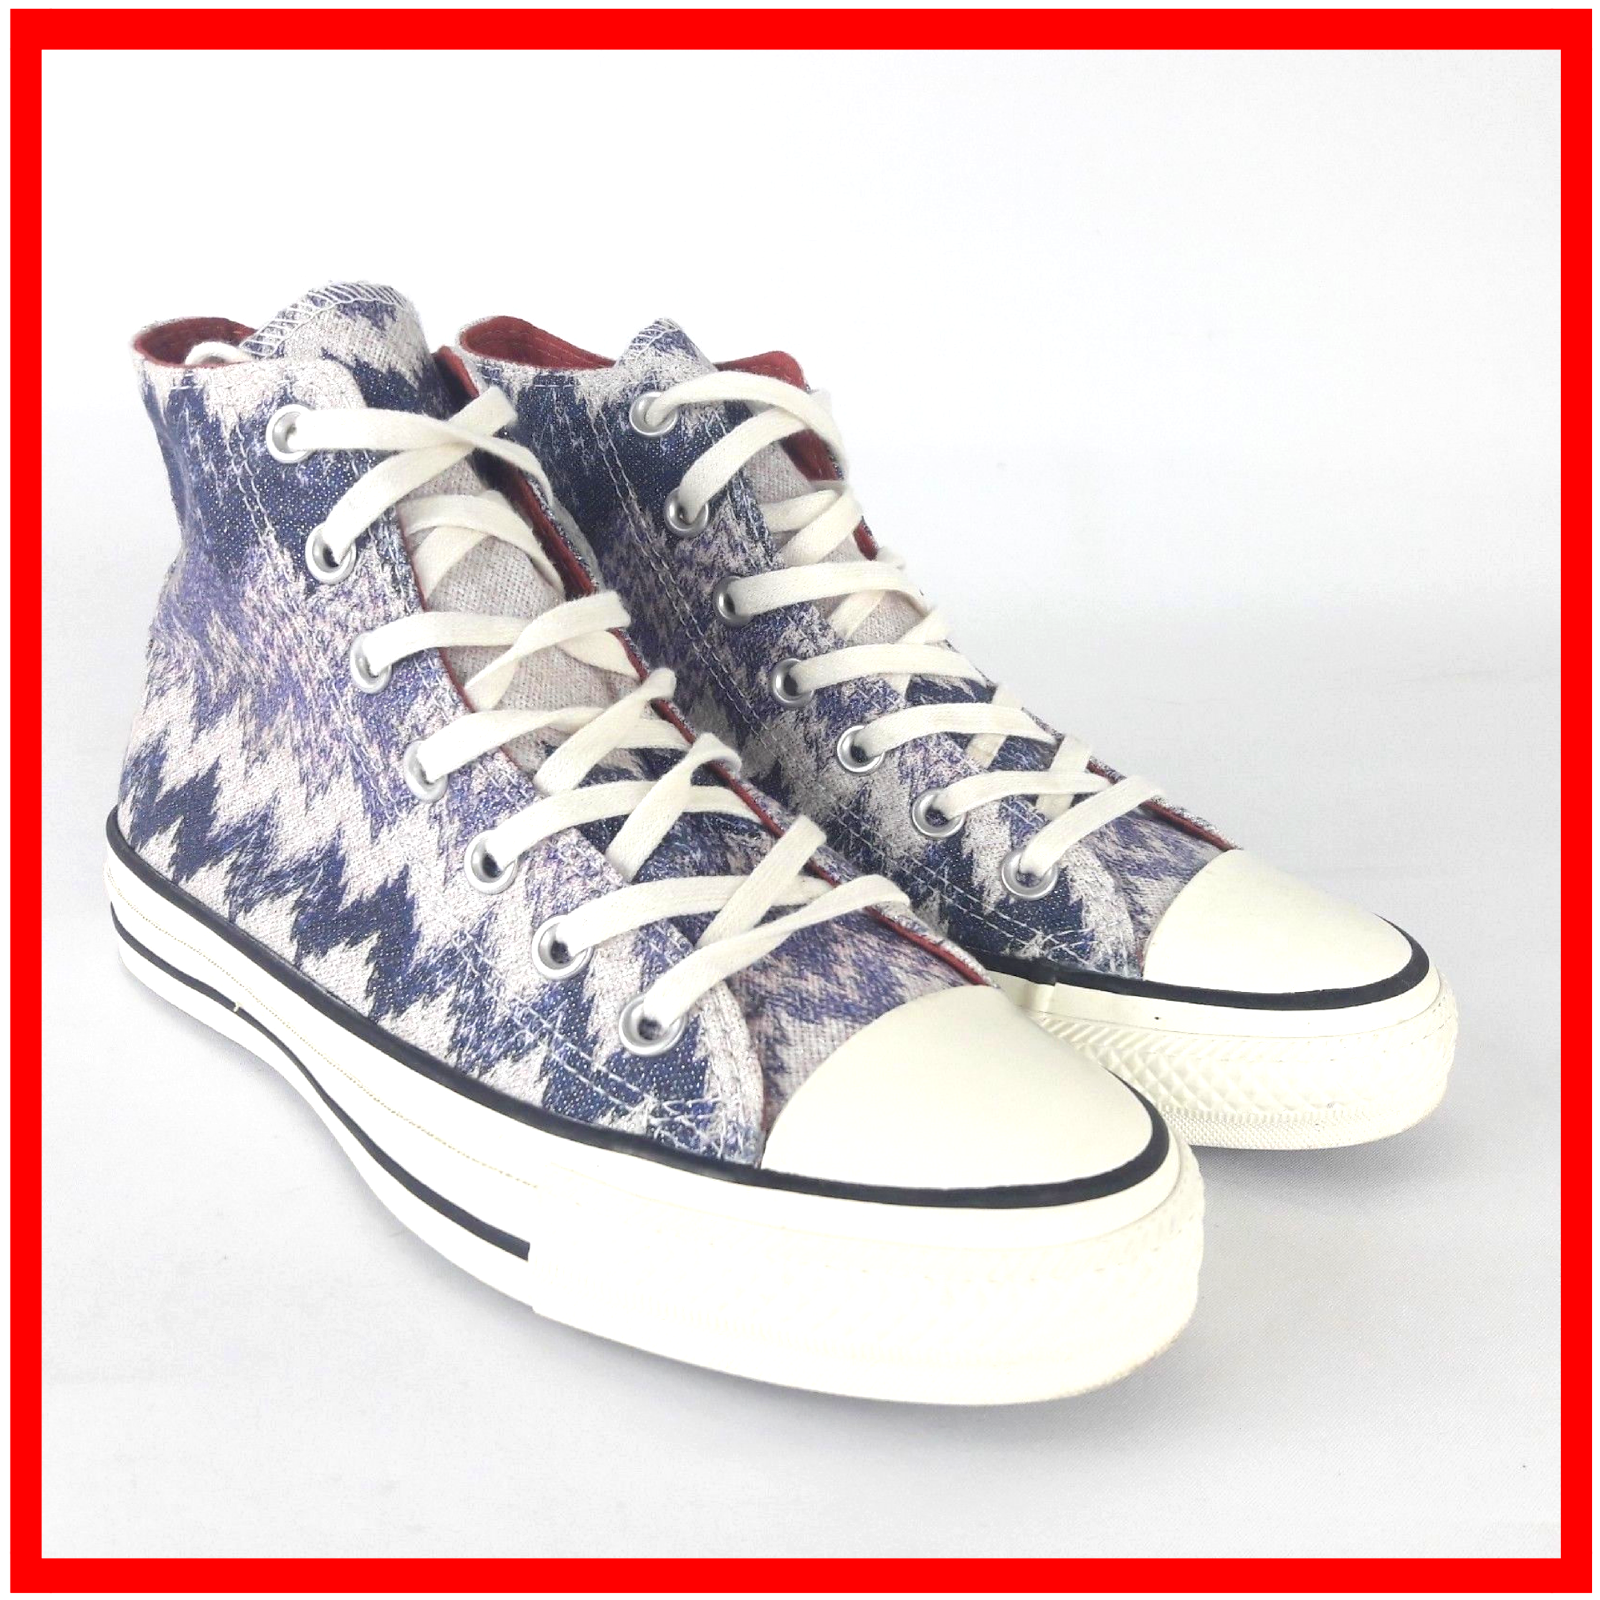 Converse Missoni Egret Multi Size UK 5 / 37.5 Chuck Taylor All Star Ct H Top X